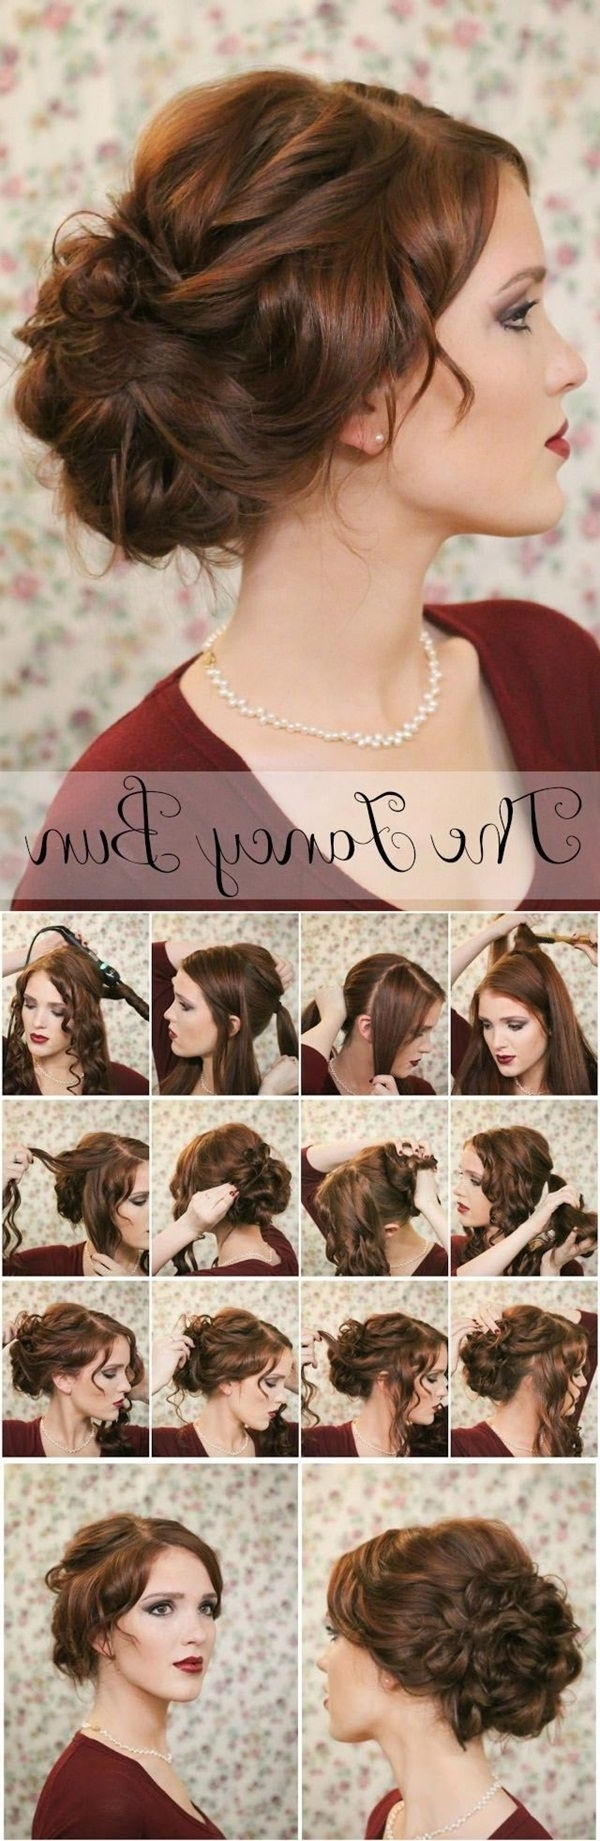 20 Diy Wedding Hairstyles With Tutorials To Try On Your Own Within Well Known Diy Wedding Hairstyles (View 4 of 15)